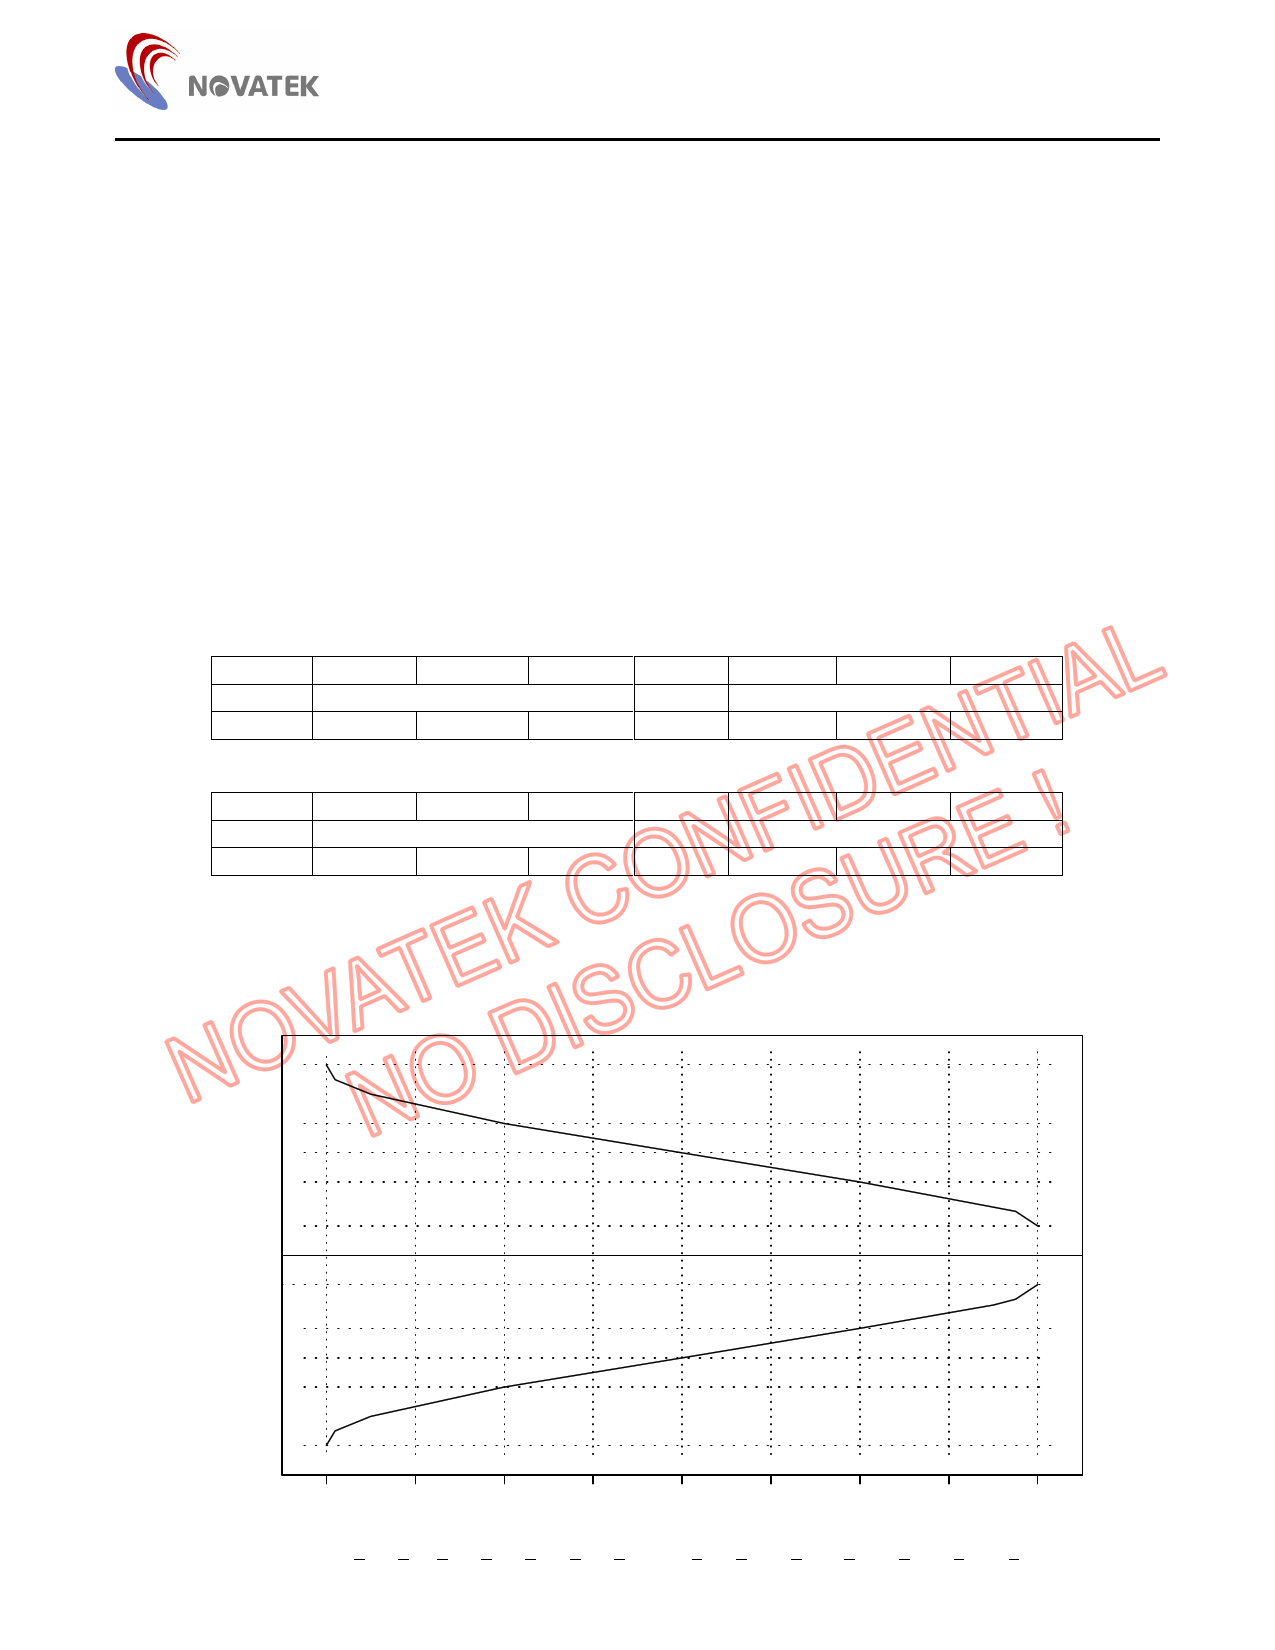 NT39411 diode, scr